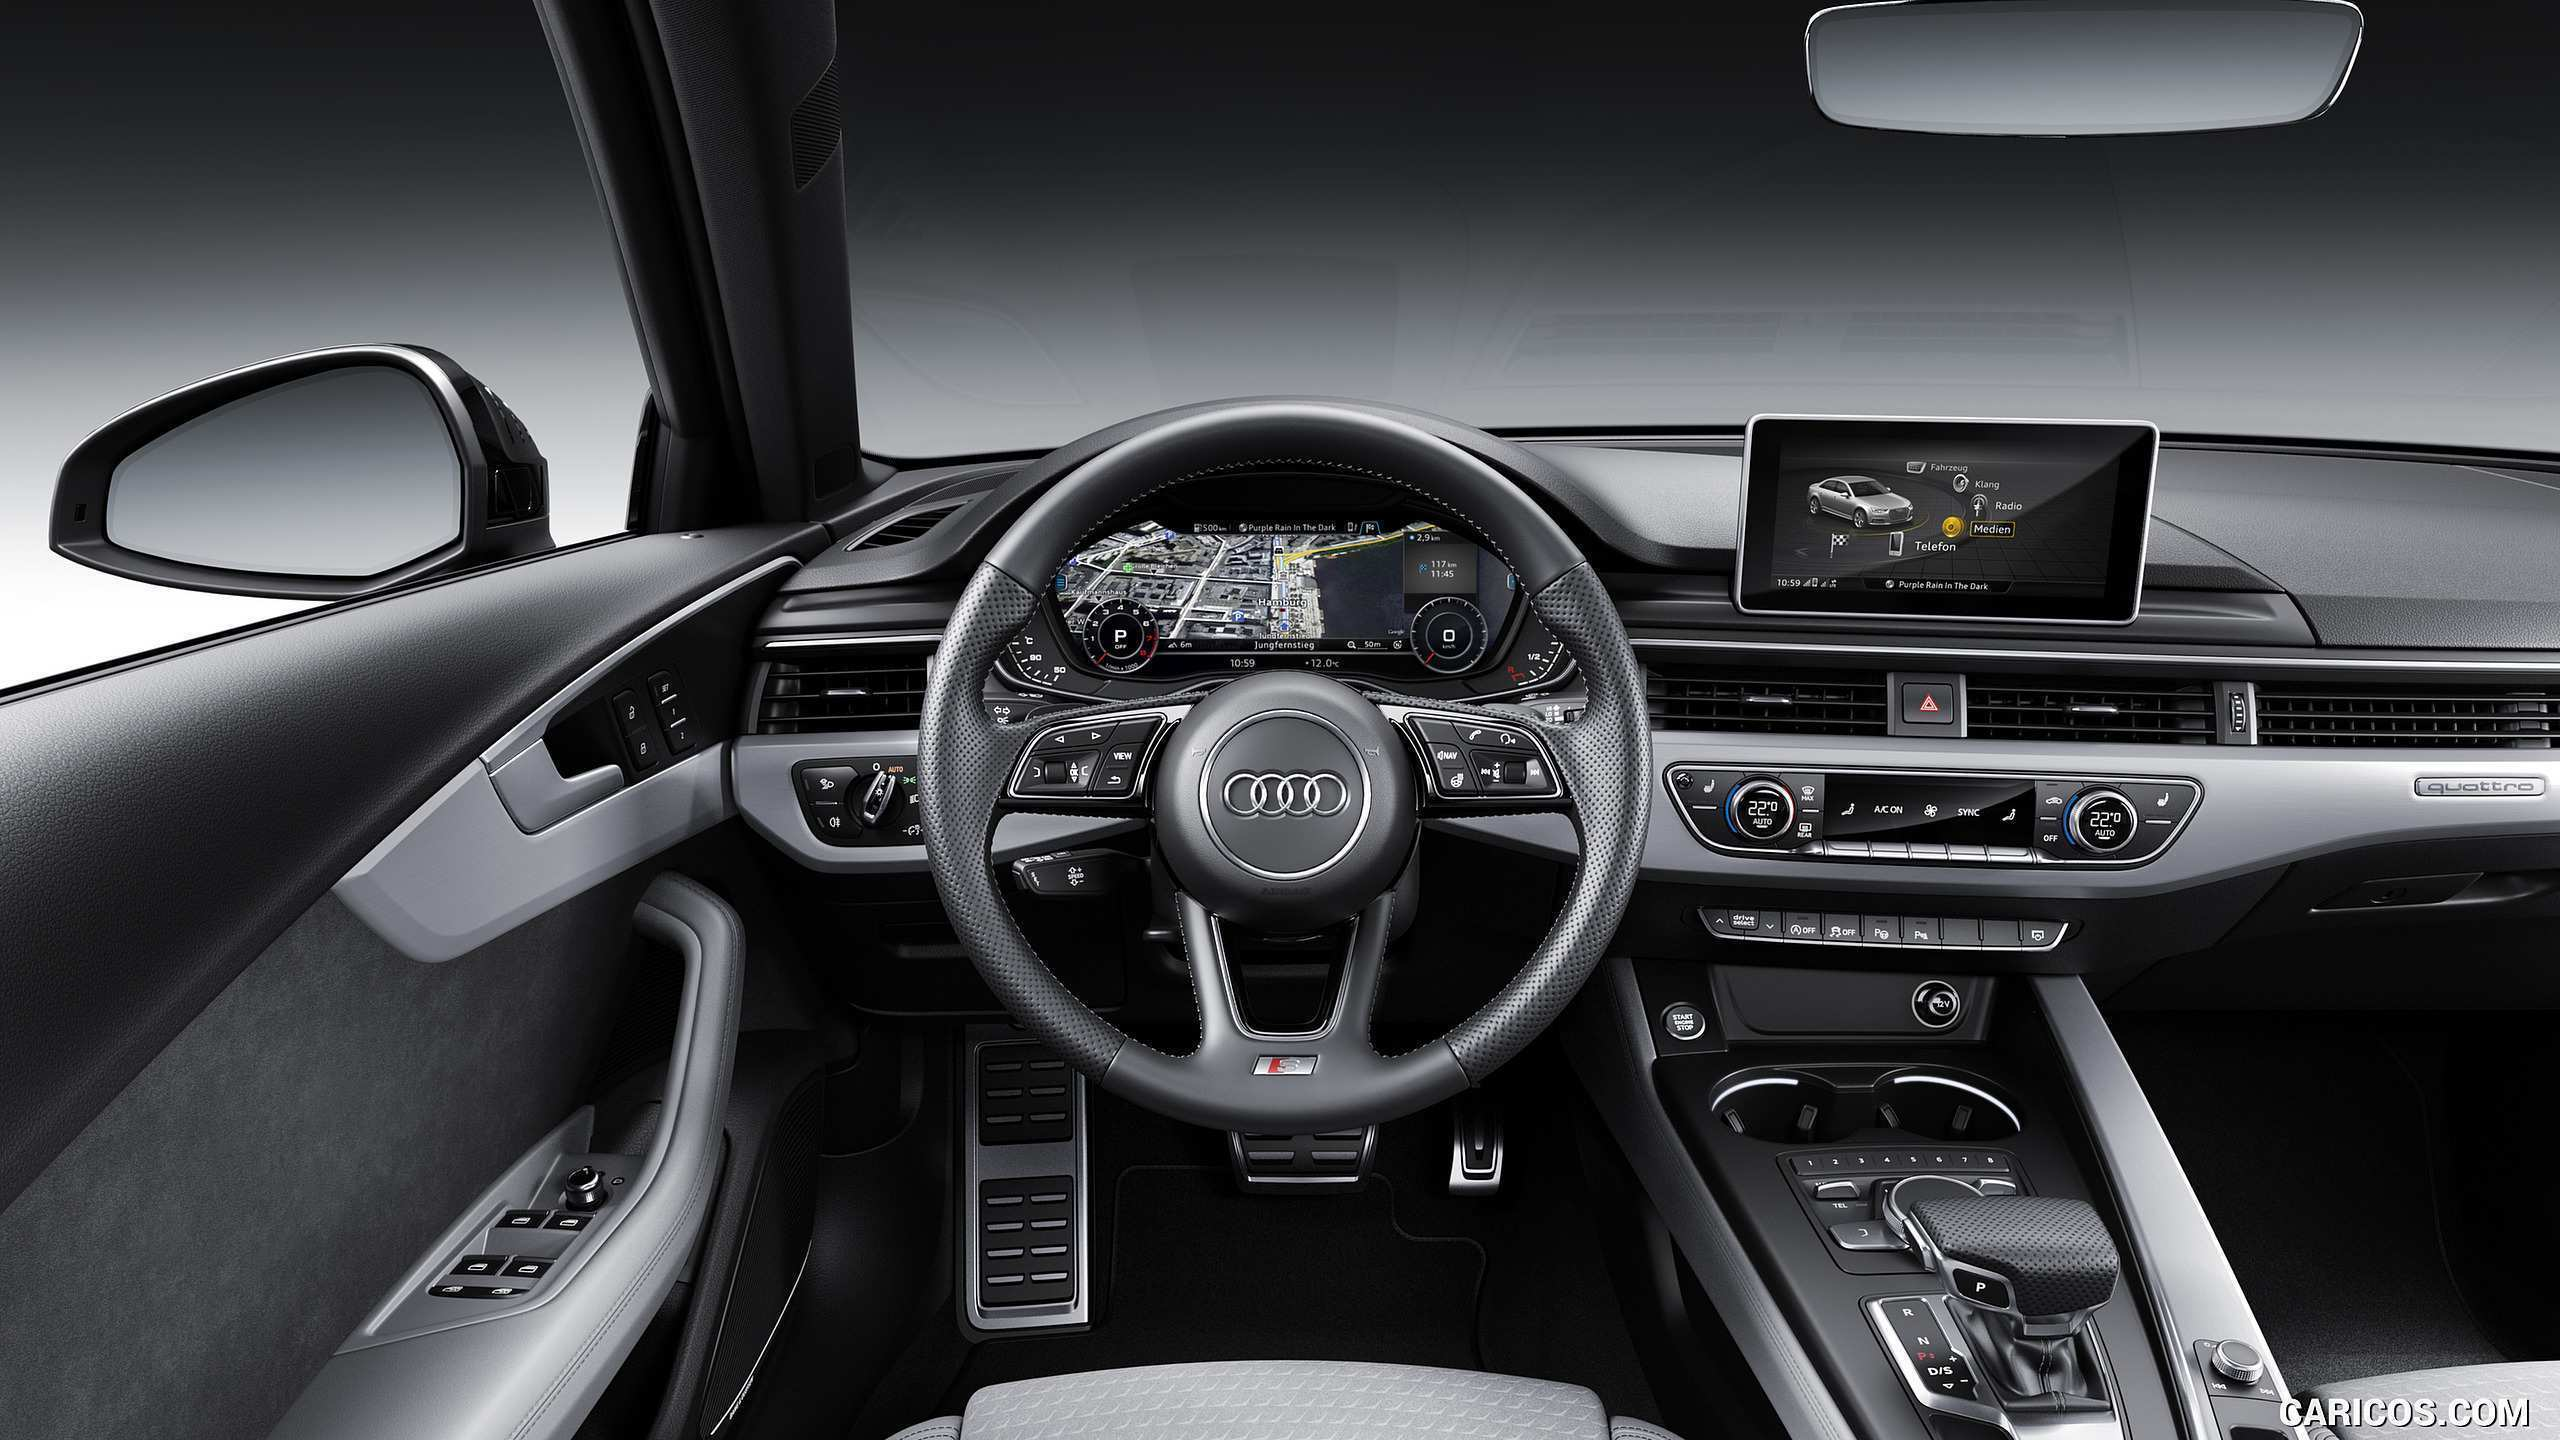 49 The 2019 Audi A4 Interior Picture with 2019 Audi A4 Interior